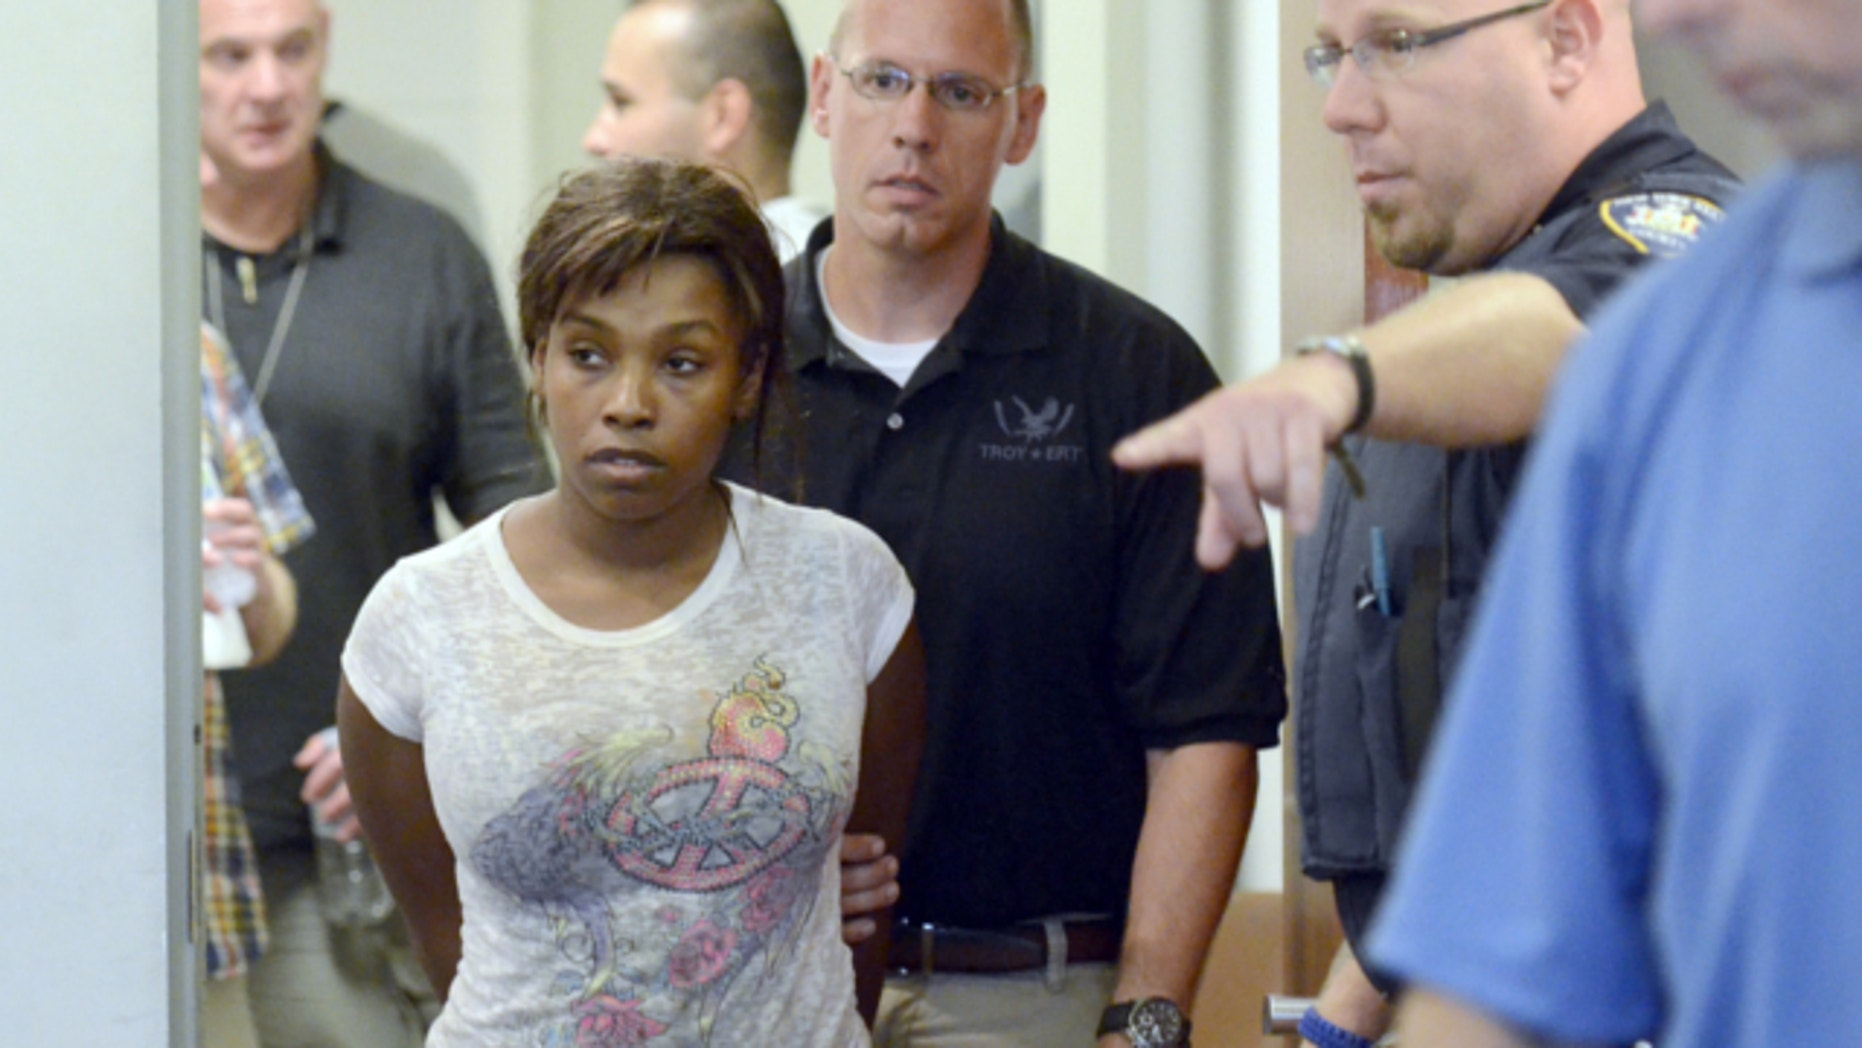 July 19, 2013: Audrea Gause, 26, of Troy, N.Y., is led into court in Troy, N.Y. to be arraigned on a Massachusetts fugitive warrant for defrauding the One Fund Boston of $480,000.